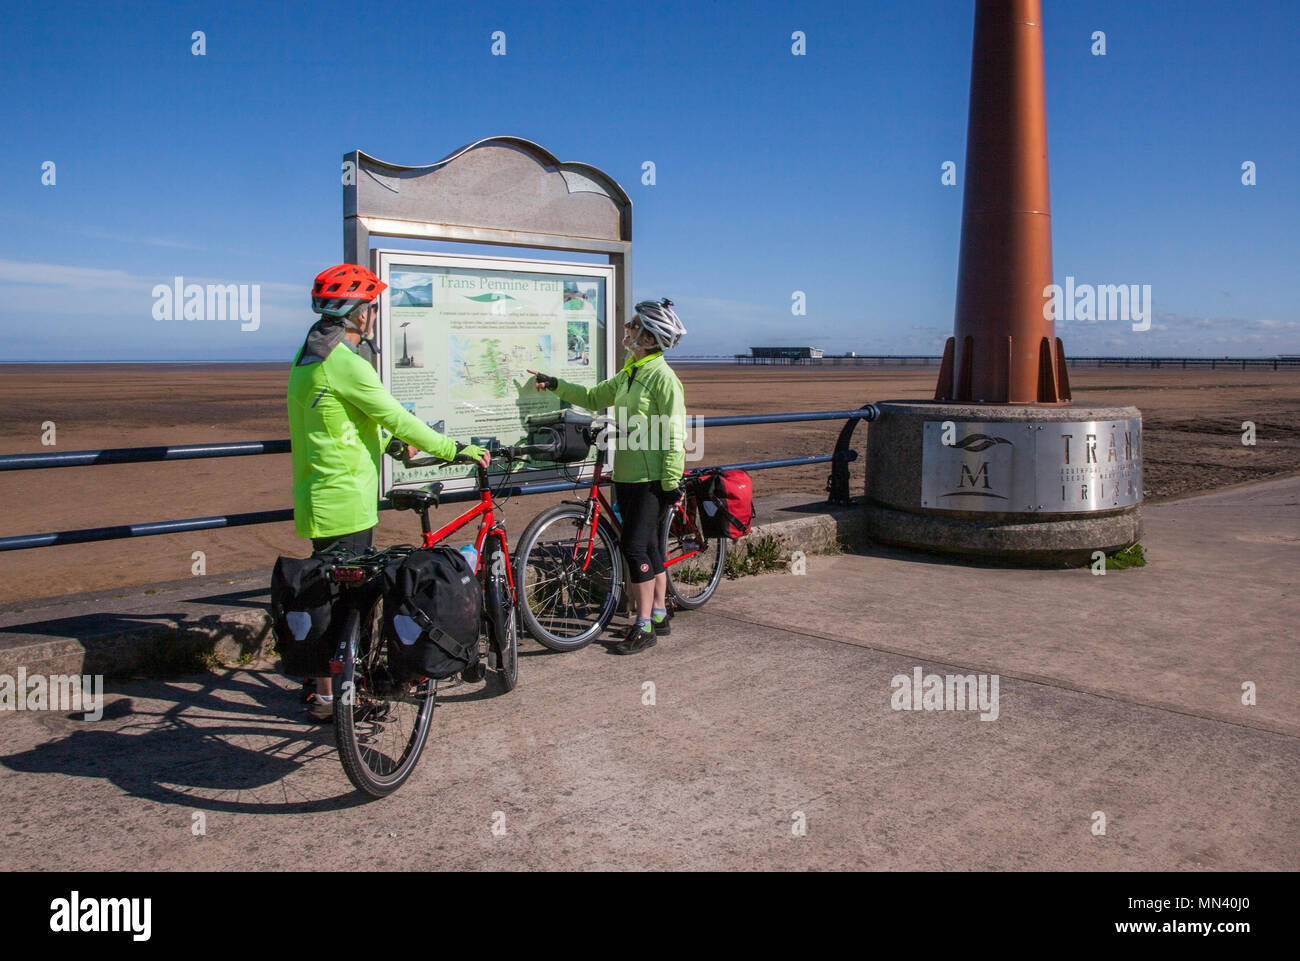 Southport, Merseyside. UK Weather. 14/05/2018. Bright sunny start to the day as Mark & Jenny check their route before setting off on a coast to coast cycle ride. The Trans Pennine Trail (TPT) is a route for walkers and cyclists. The Trail from coast-to-coast between Southport and Hornsea is 215 miles.  The Trans Pennine Trail is mapped and signed all the way, mainly traffic free and is surprisingly level considering the dramatic scenery along the way. Credit: MediaWorldImages/AlamyLiveNews. - Stock Image